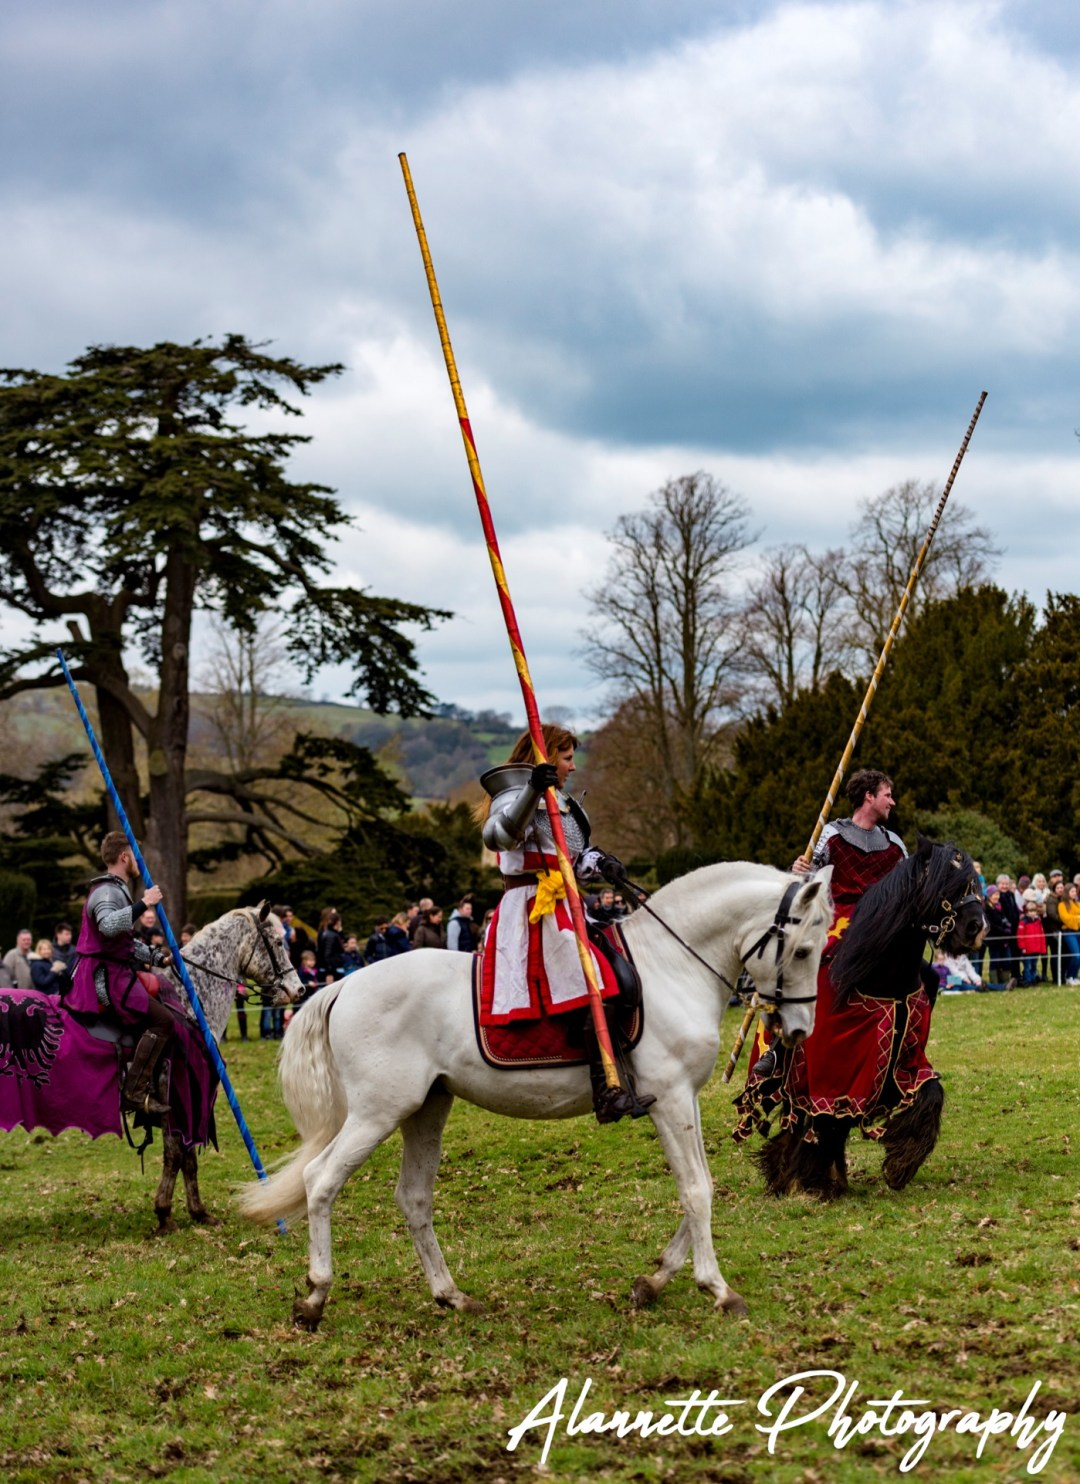 Medieval Wedding at Bolton Castle with knights and horses provided by The Cavalry of Heroes Ltd